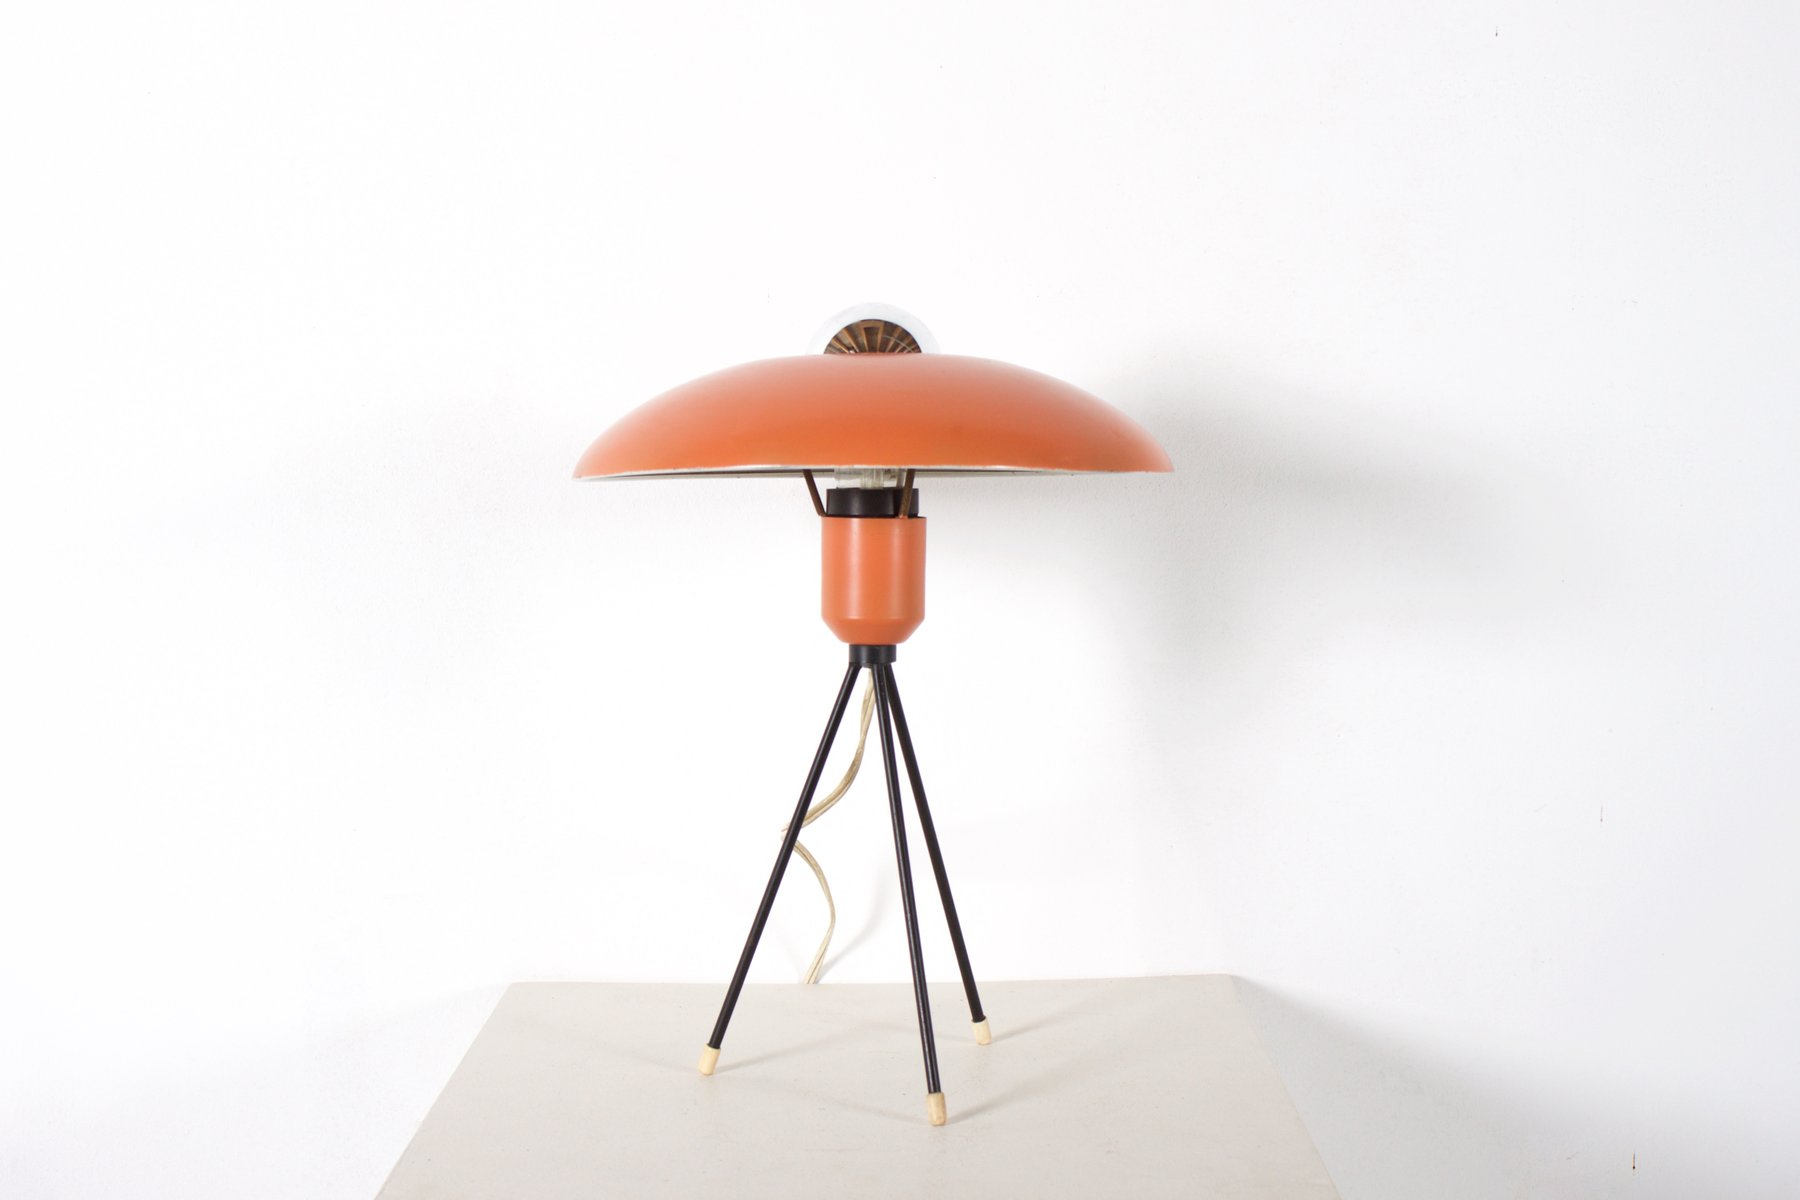 Dutch tripod table lamp by louis kalff for philips 1950s for sale dutch tripod table lamp by louis kalff for philips 1950s aloadofball Images